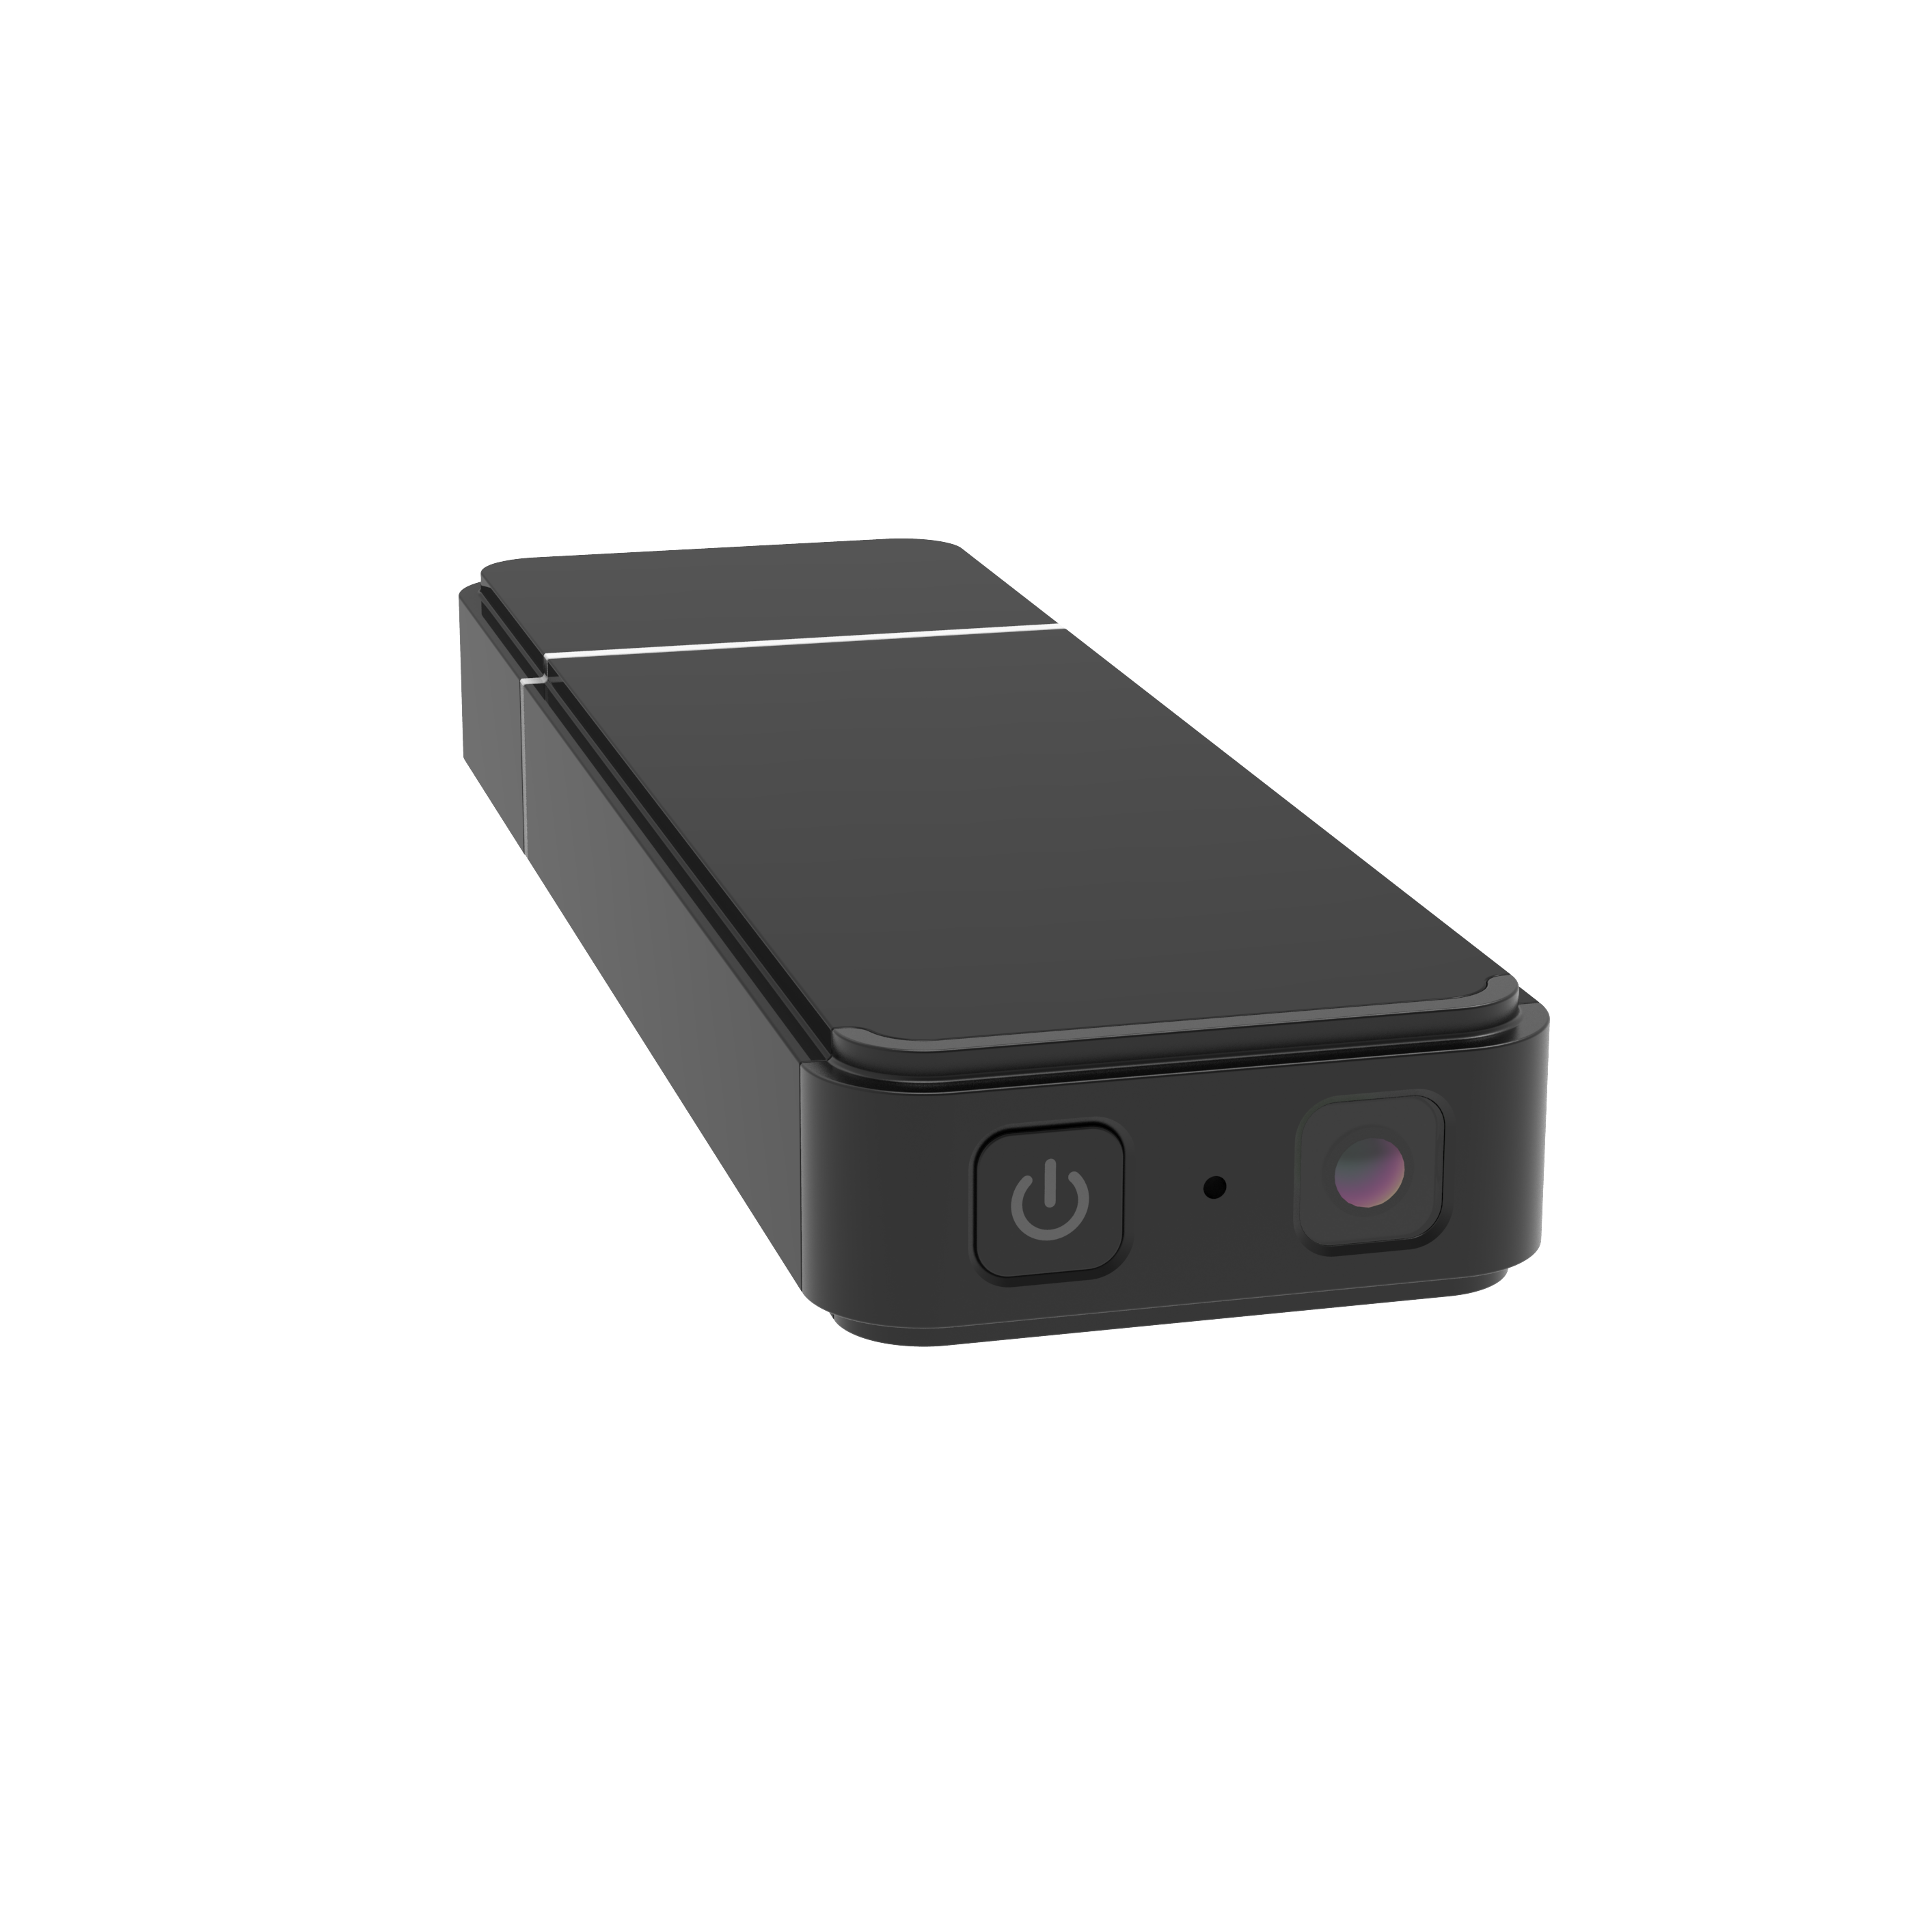 news-The many possibilities of flash drives-Hnsat-img-2